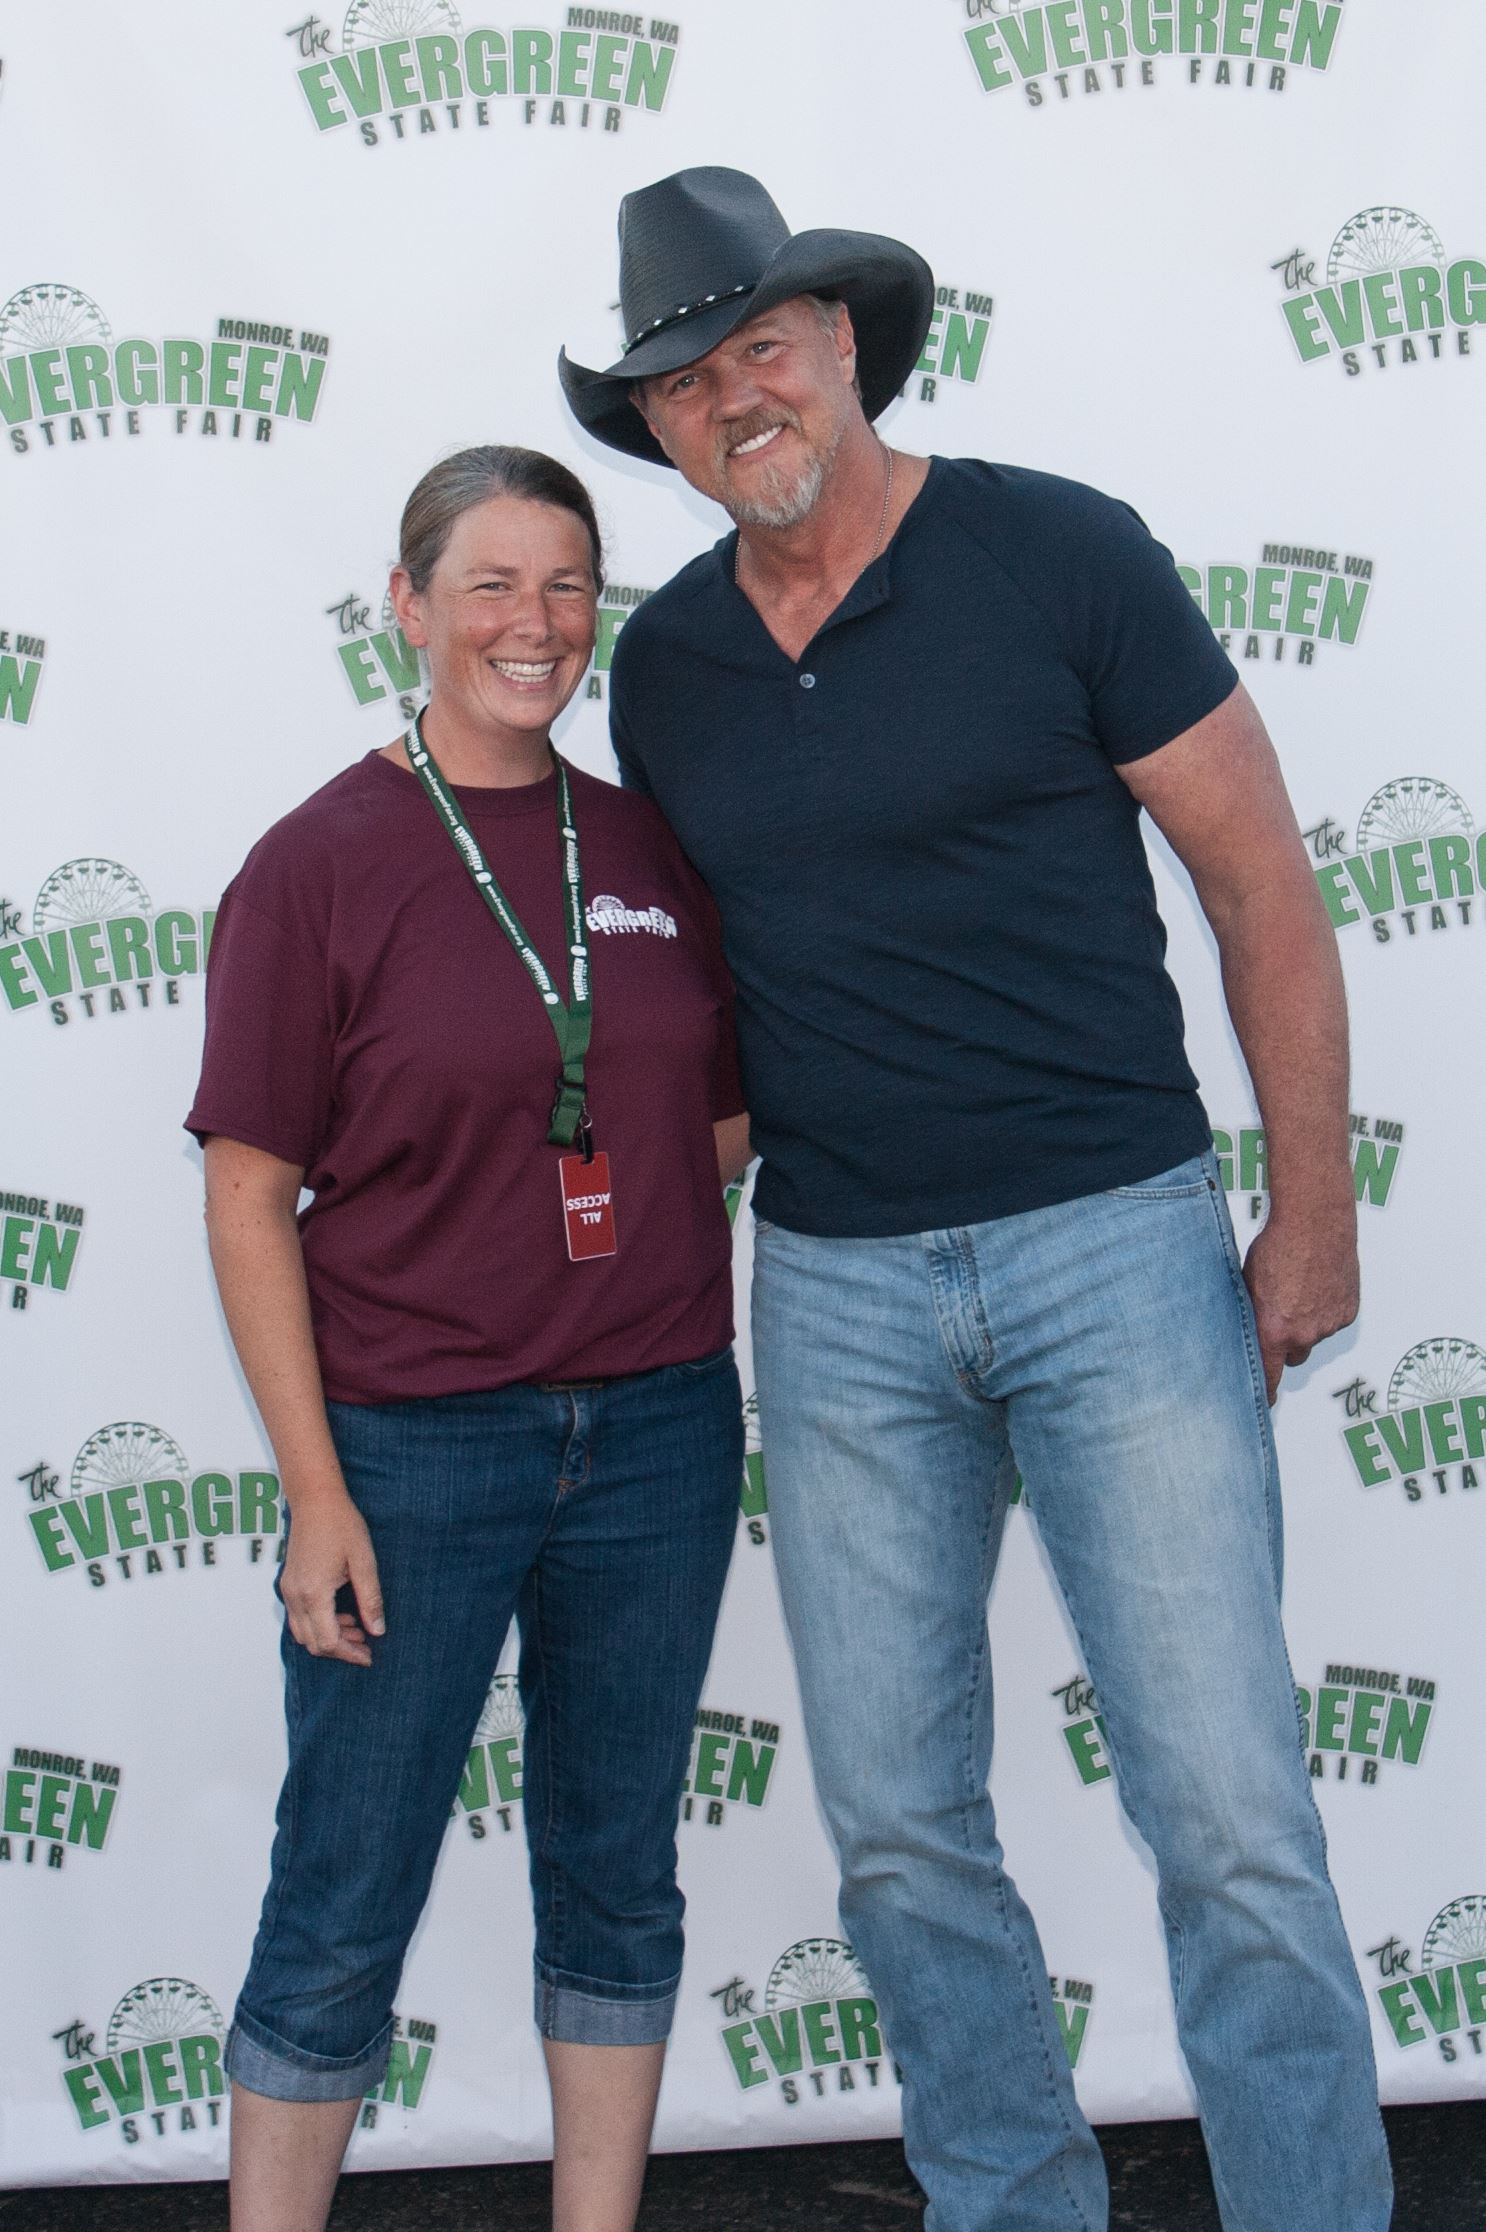 Evergreen state fairgrounds wa official website traceadkins84 kristyandbryce Choice Image